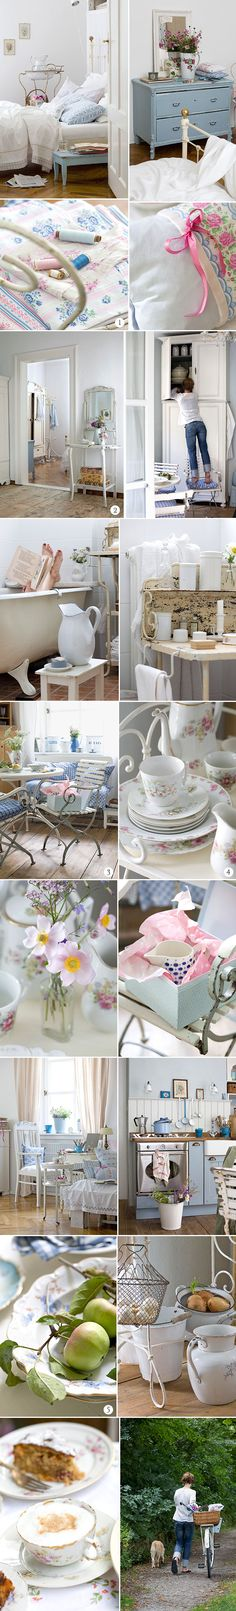 Sous le charme du Shabby Magazine Westwing | Westwing Home & Living Magazine